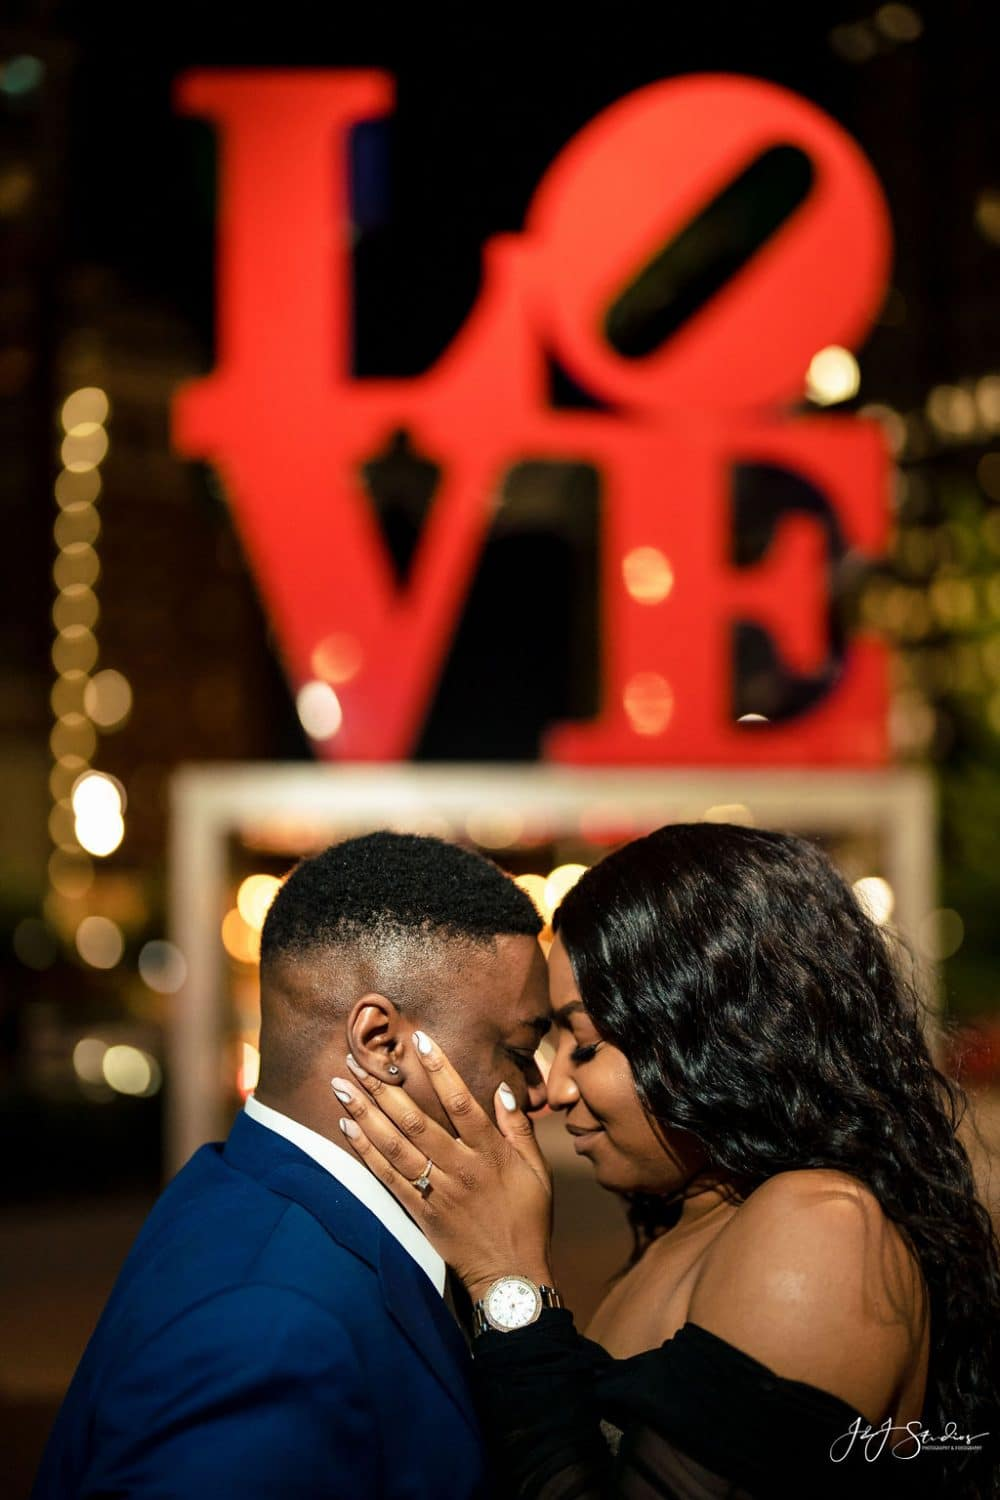 Passionate kiss in front of Love Park Statue shot by John Ryan